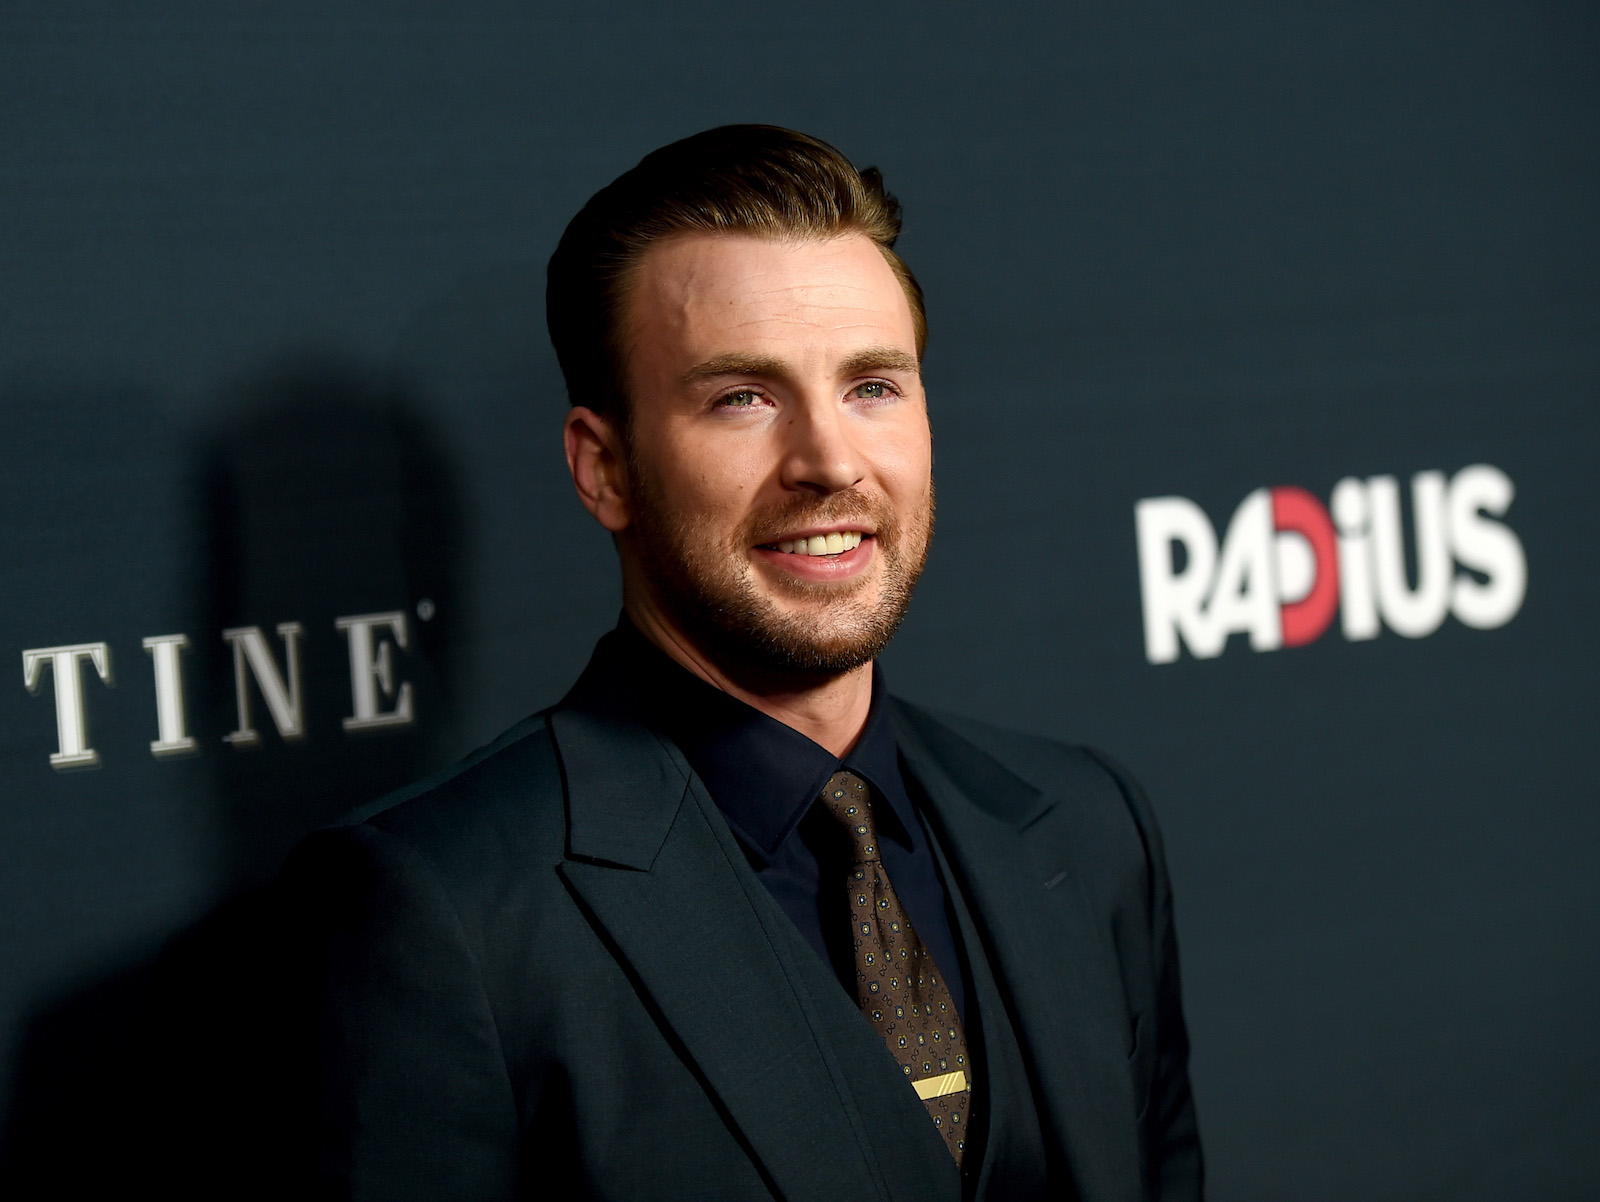 is-chris-evans-the-most-gorgeous-superhero-around-main-image.jpg